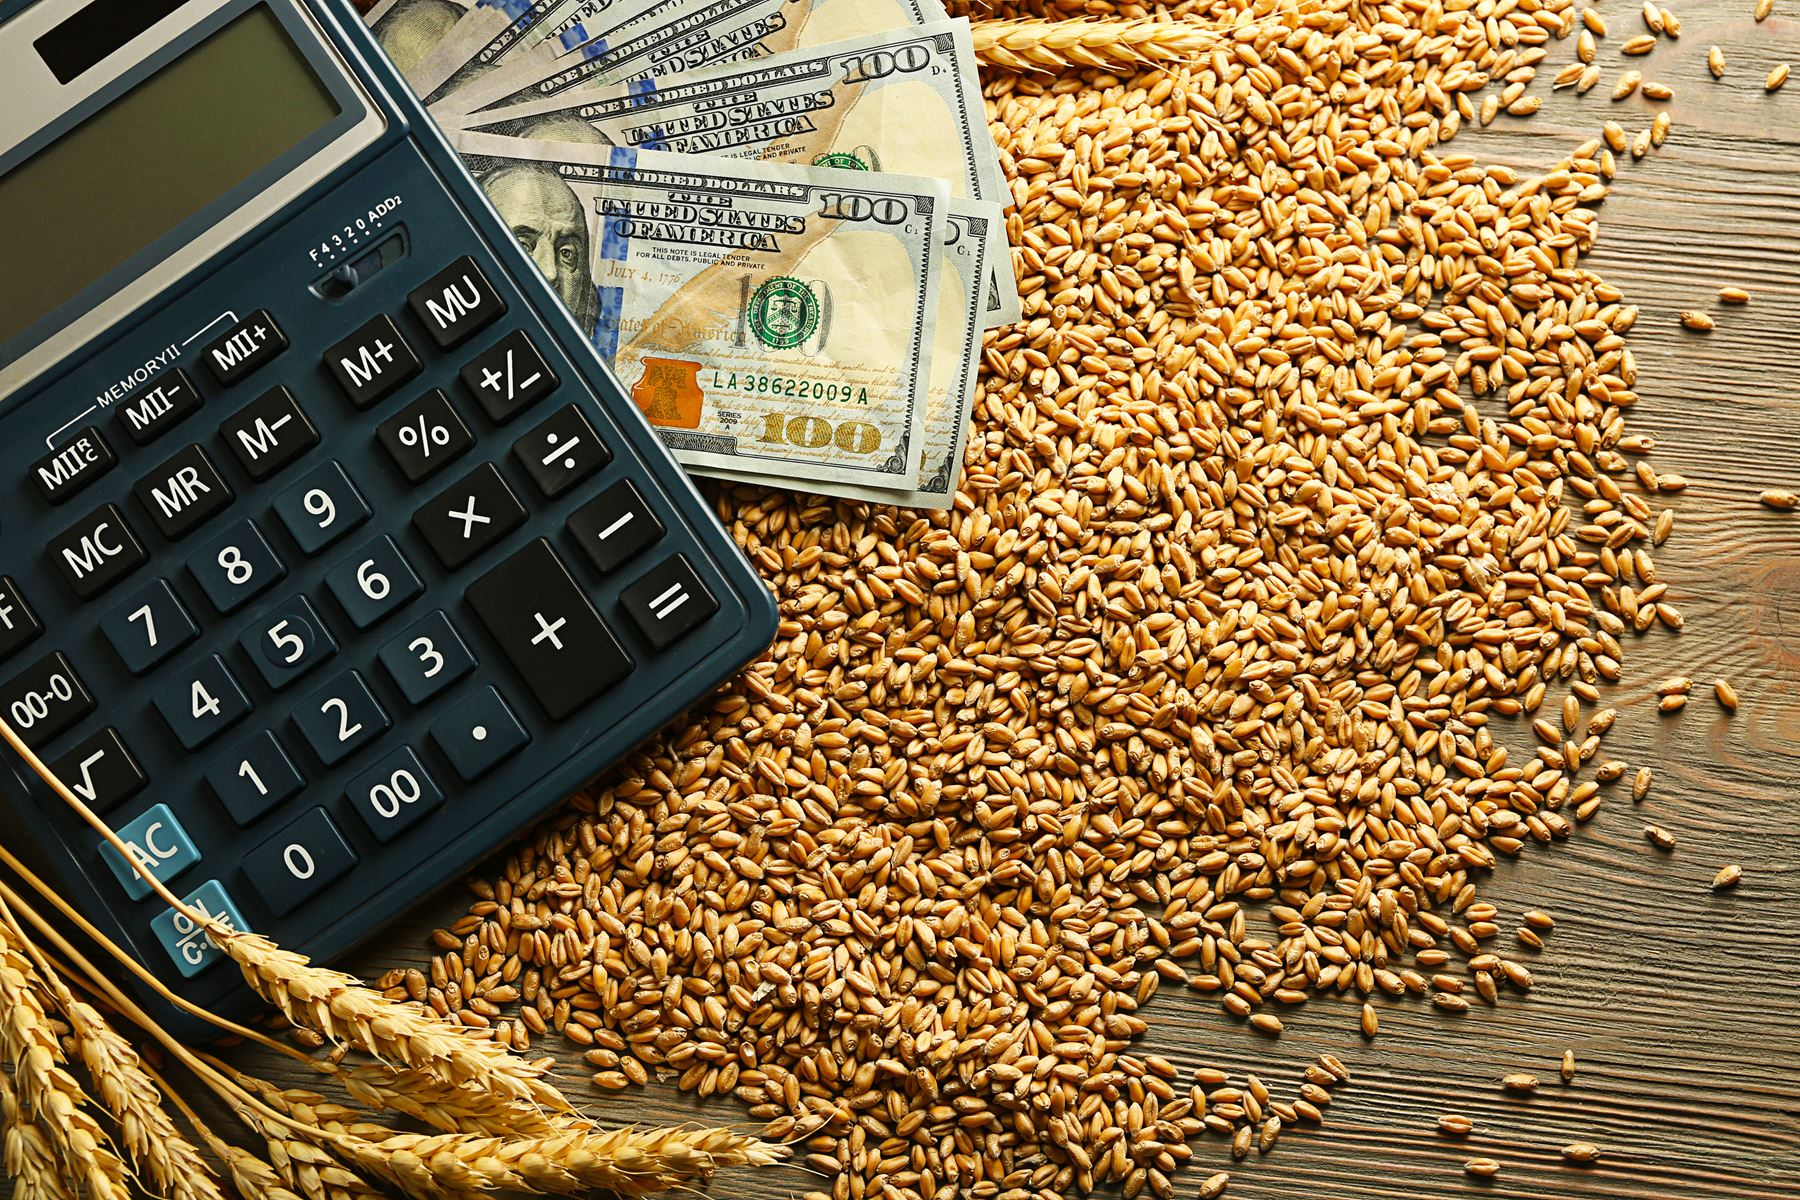 Calculator and cash sitting on top of wheat kernels.